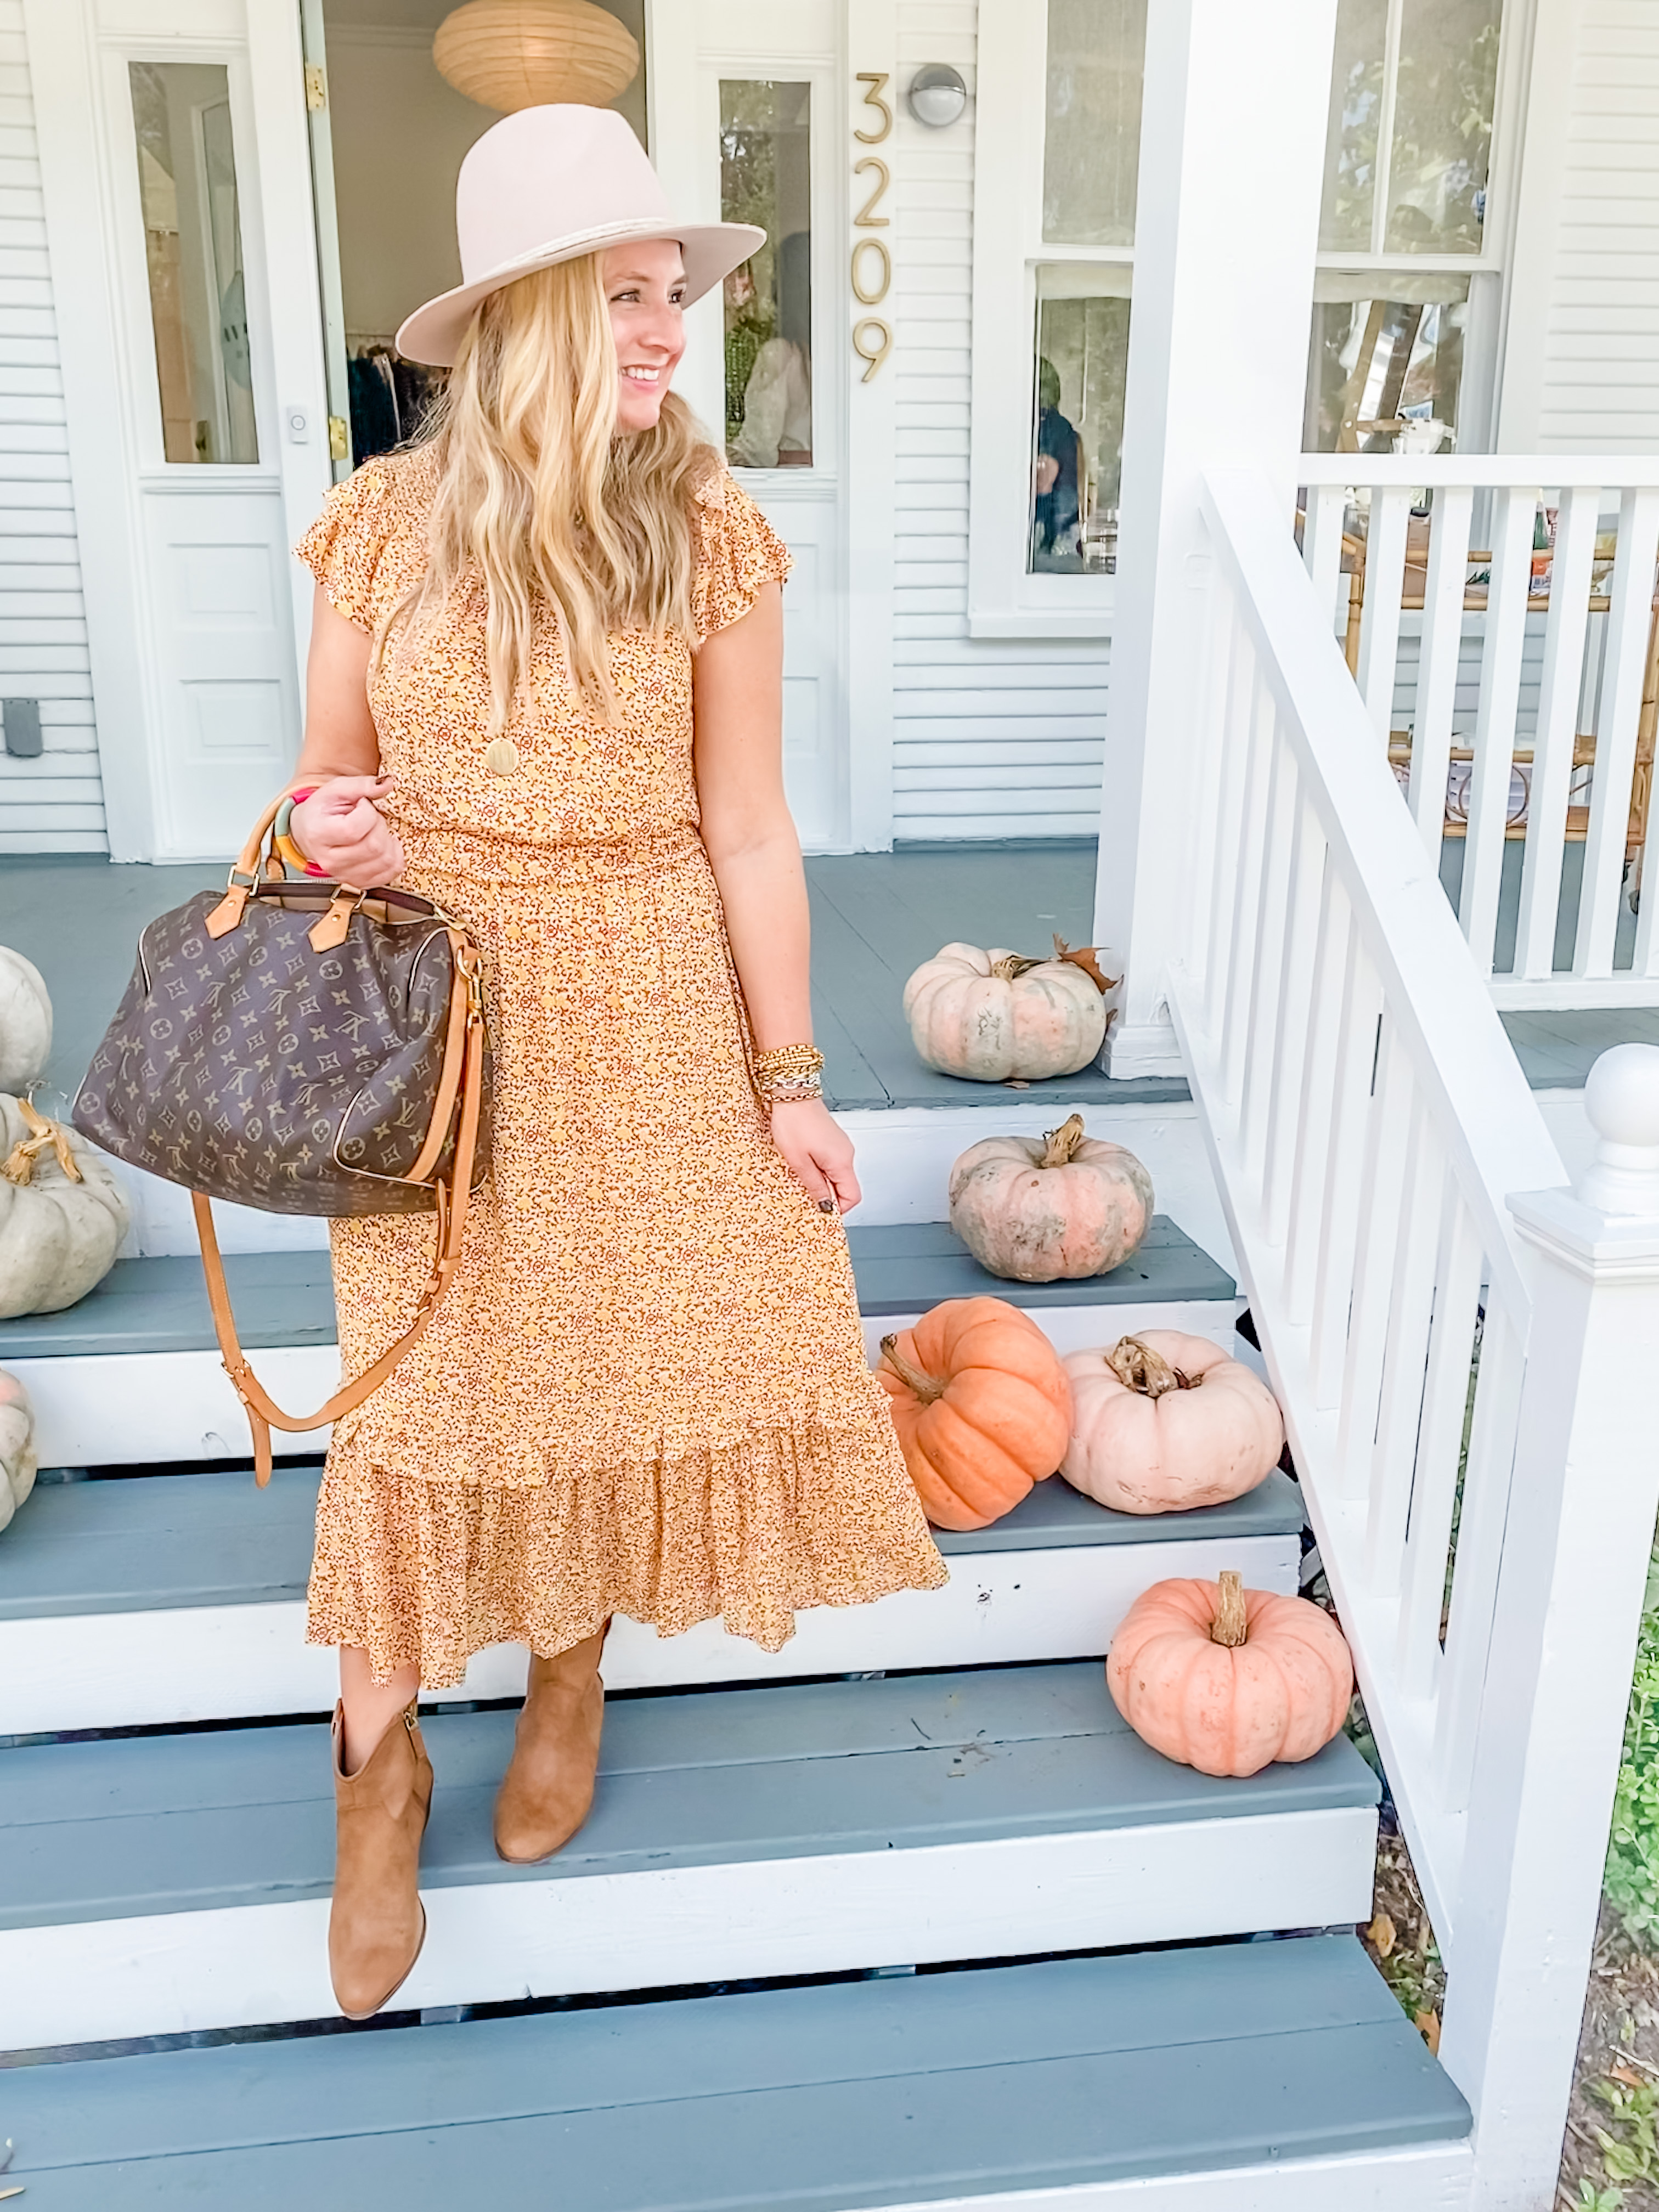 Cute Fall Outfits by popular Houston fashion blog, Fancy Ashley: image of a woman wearing a orange floral print ruffle hem maxi dress, felt hat, tan ankle boots and holding a Louis Vuitton bag.